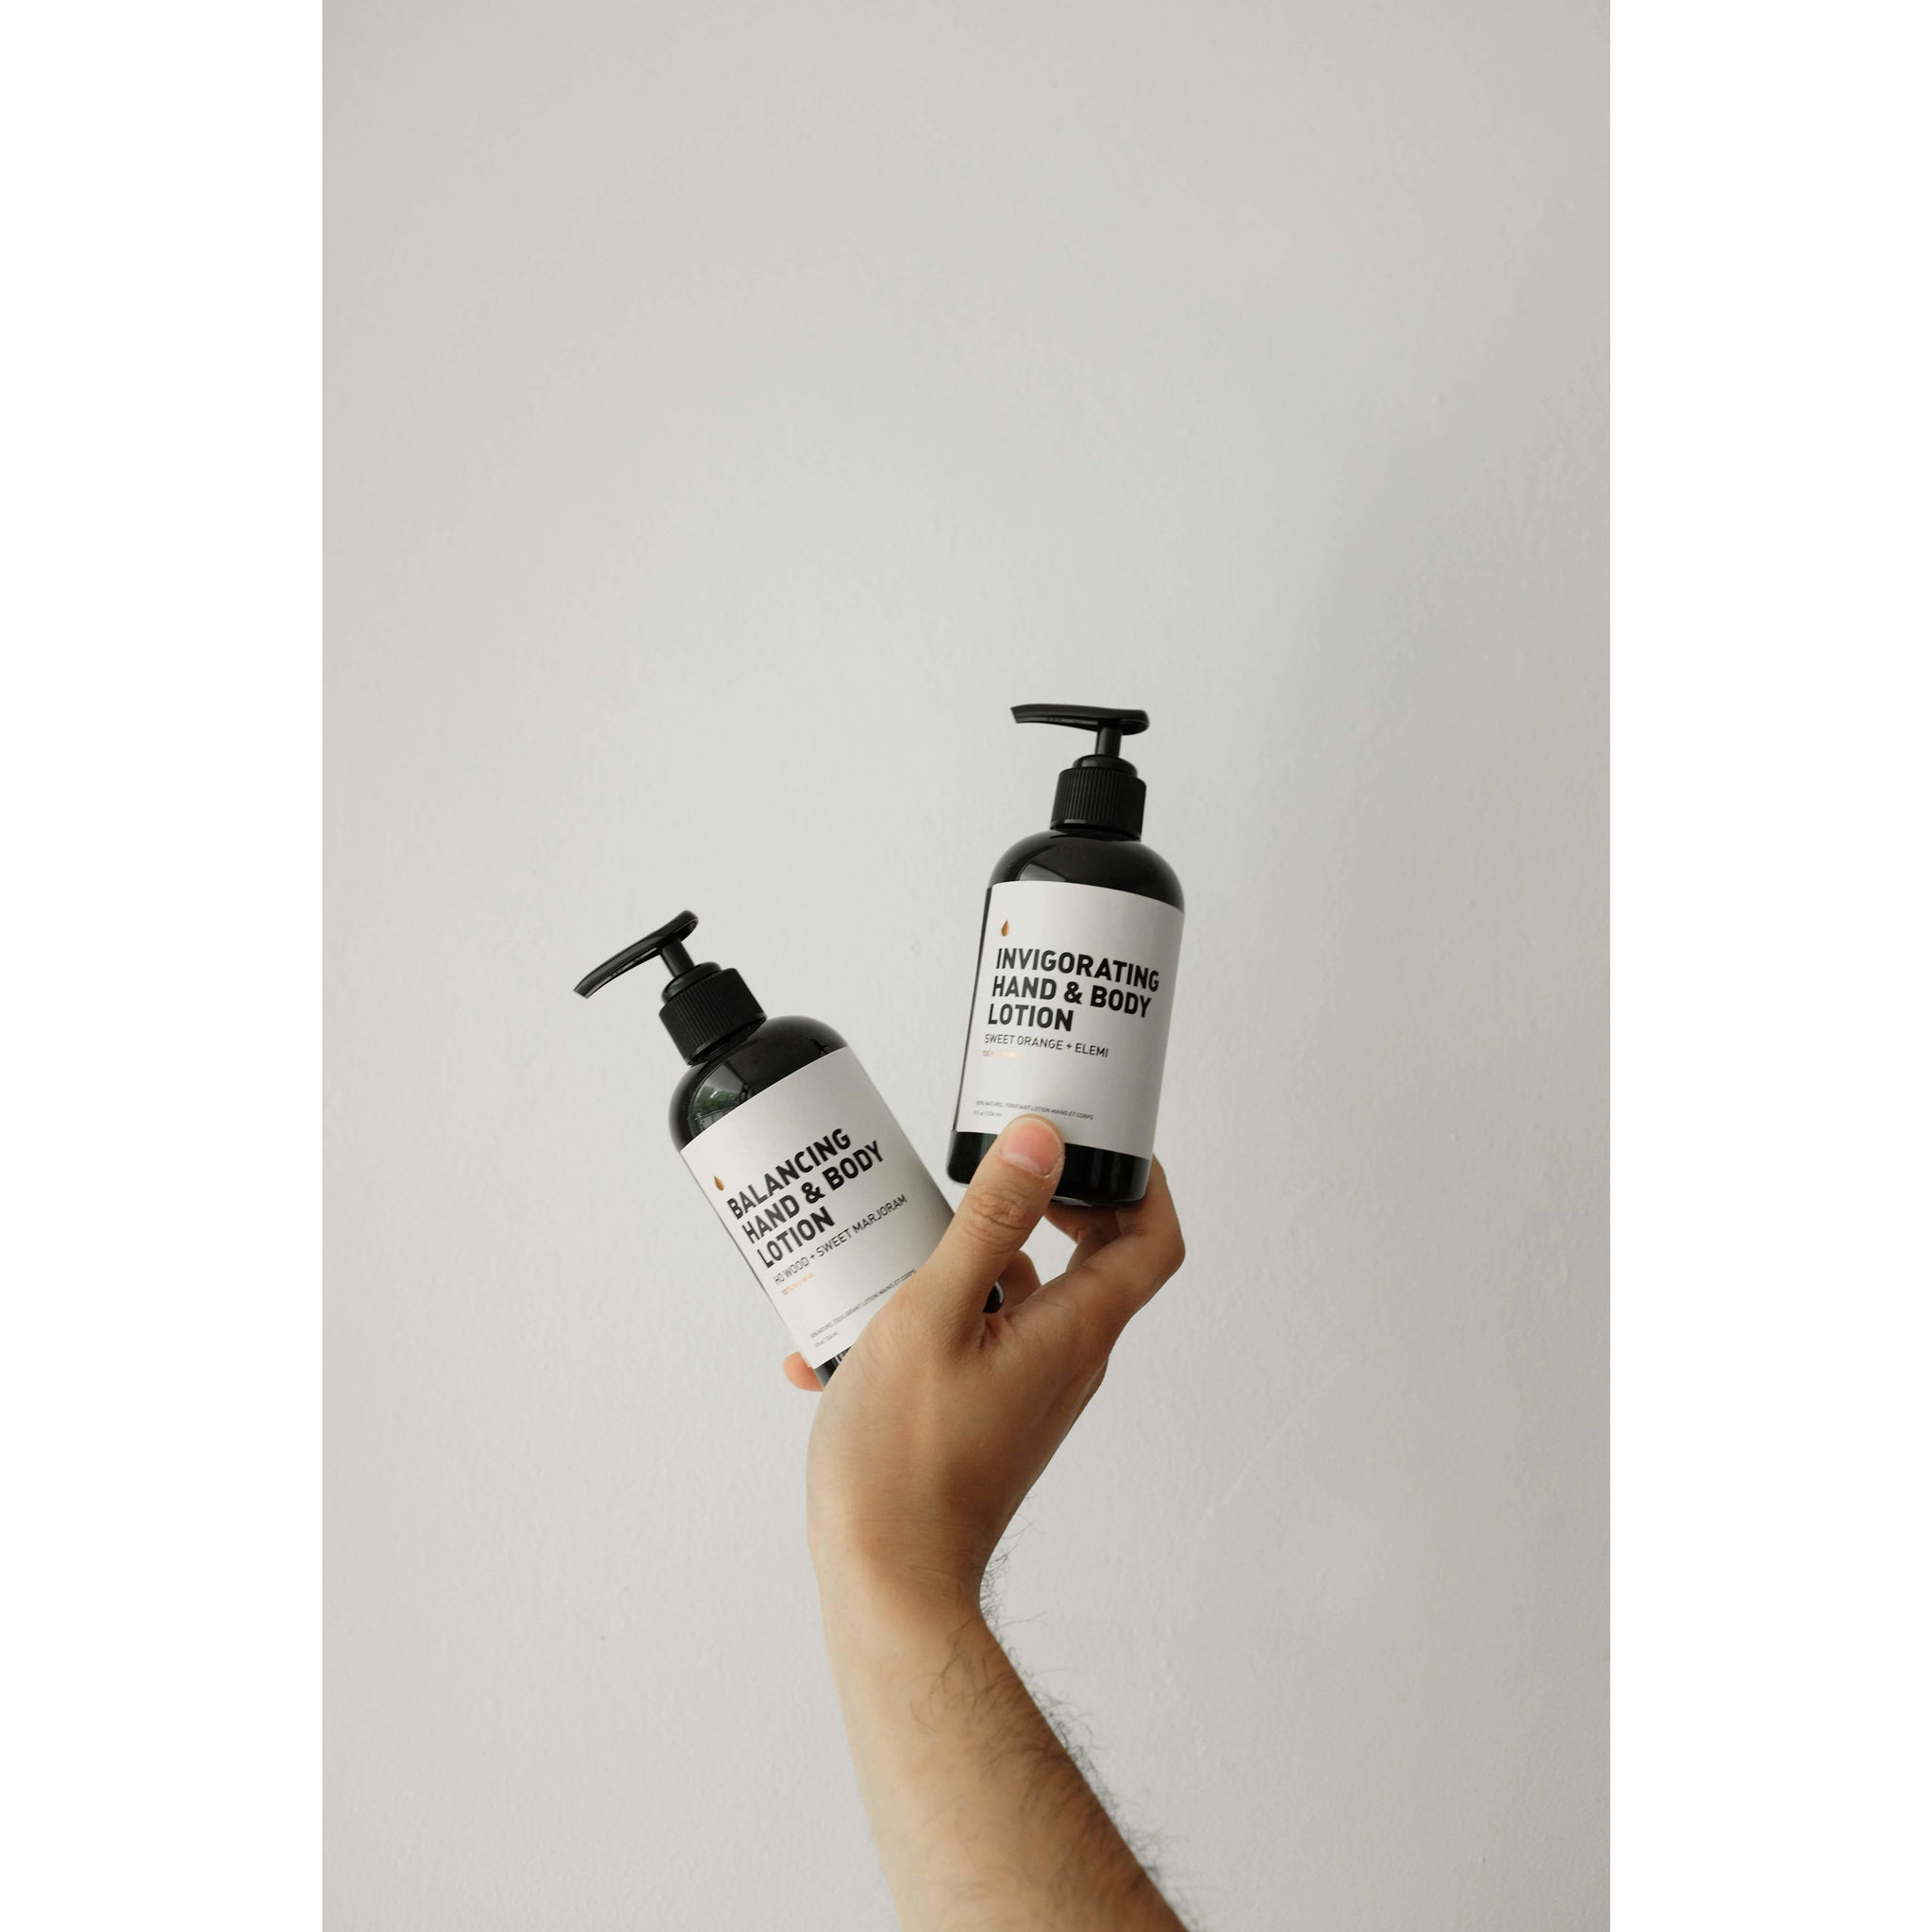 Gray Invigorating Hand & Body Lotion